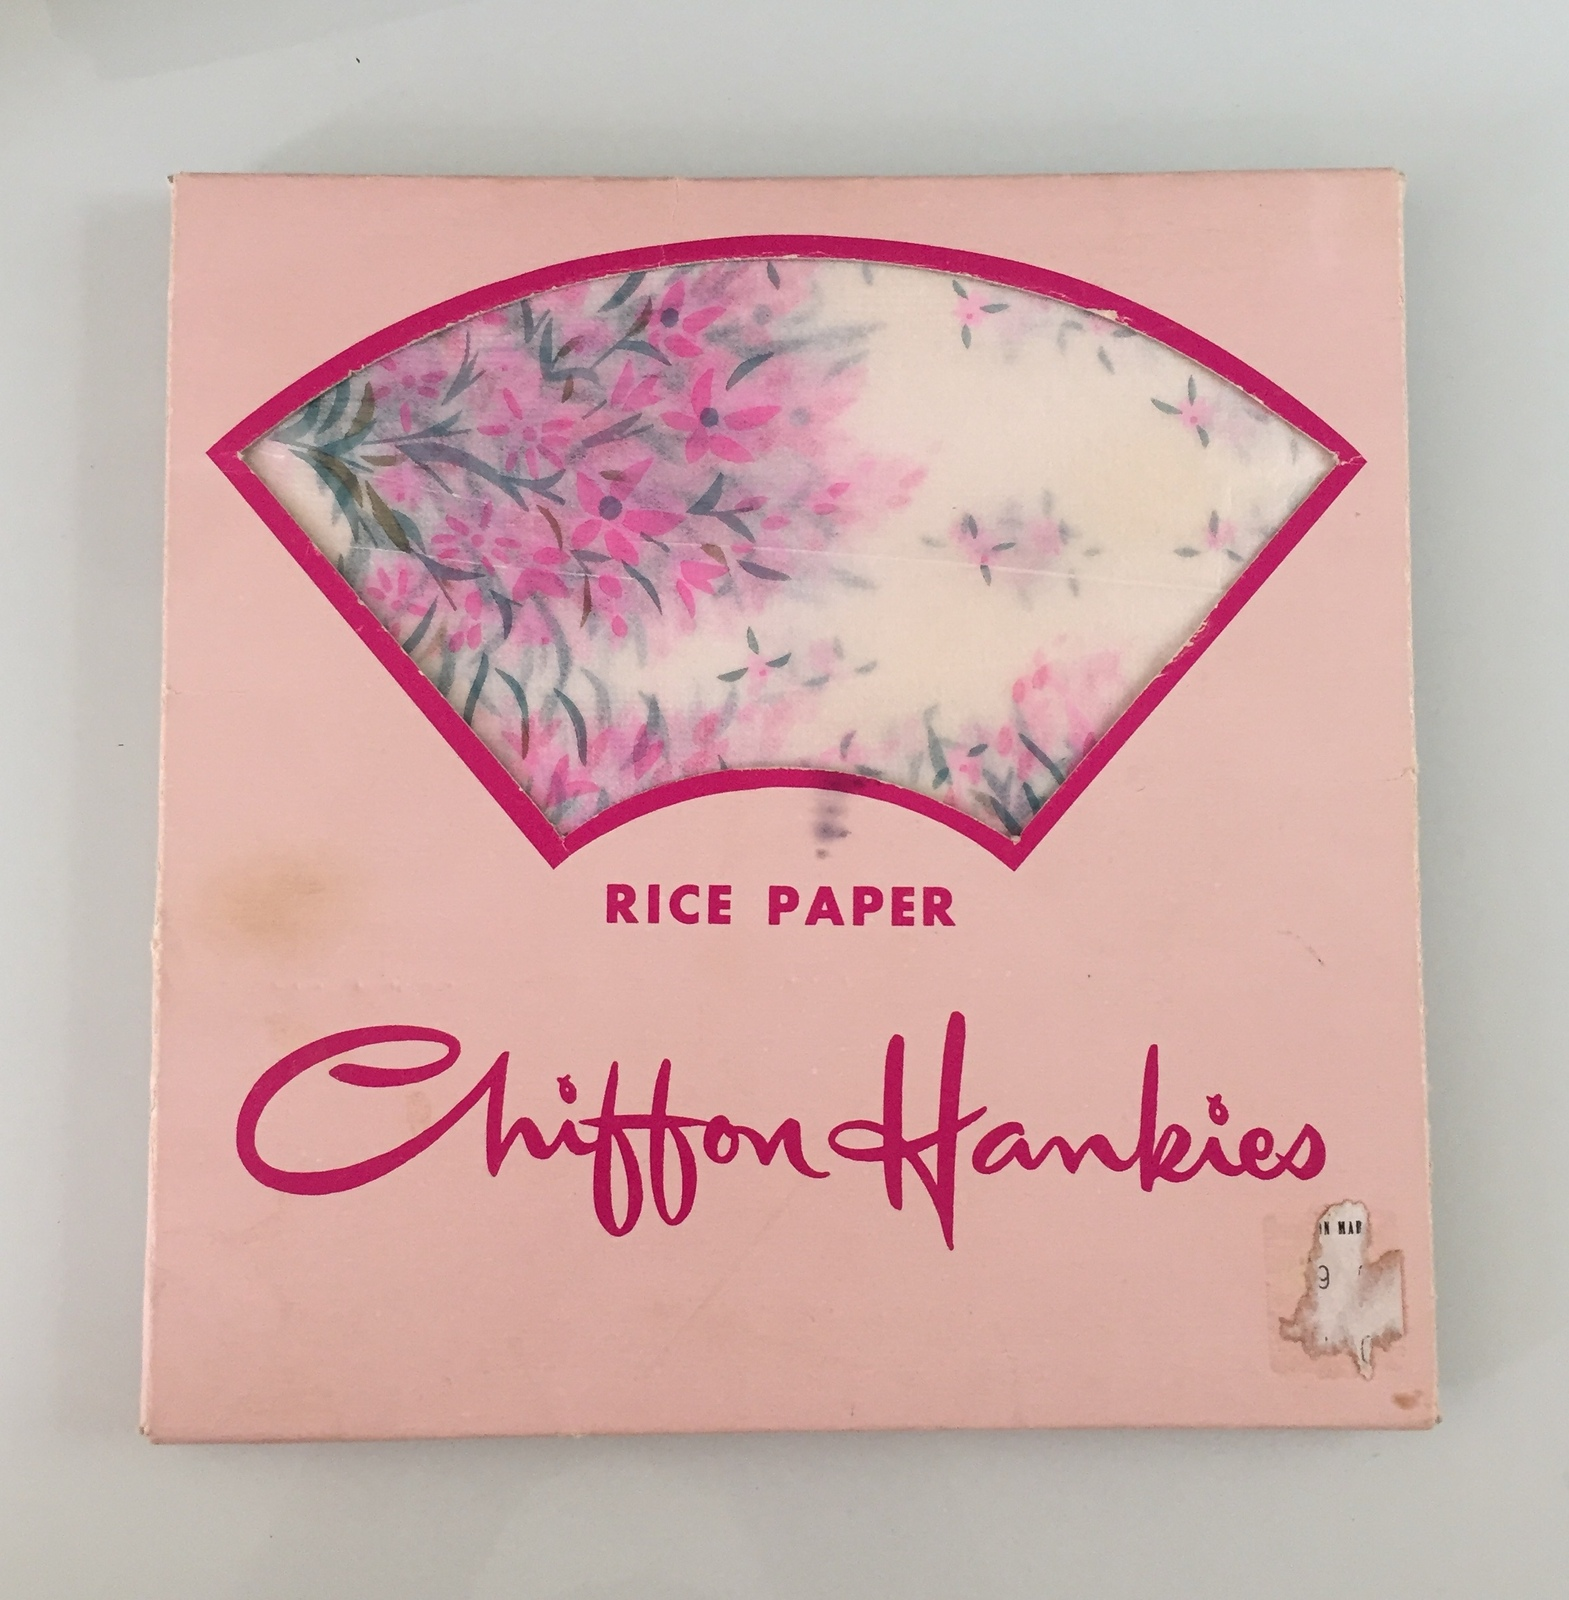 Vintage 50s rice paper chiffon hankies pack by K King (mostly full pack)